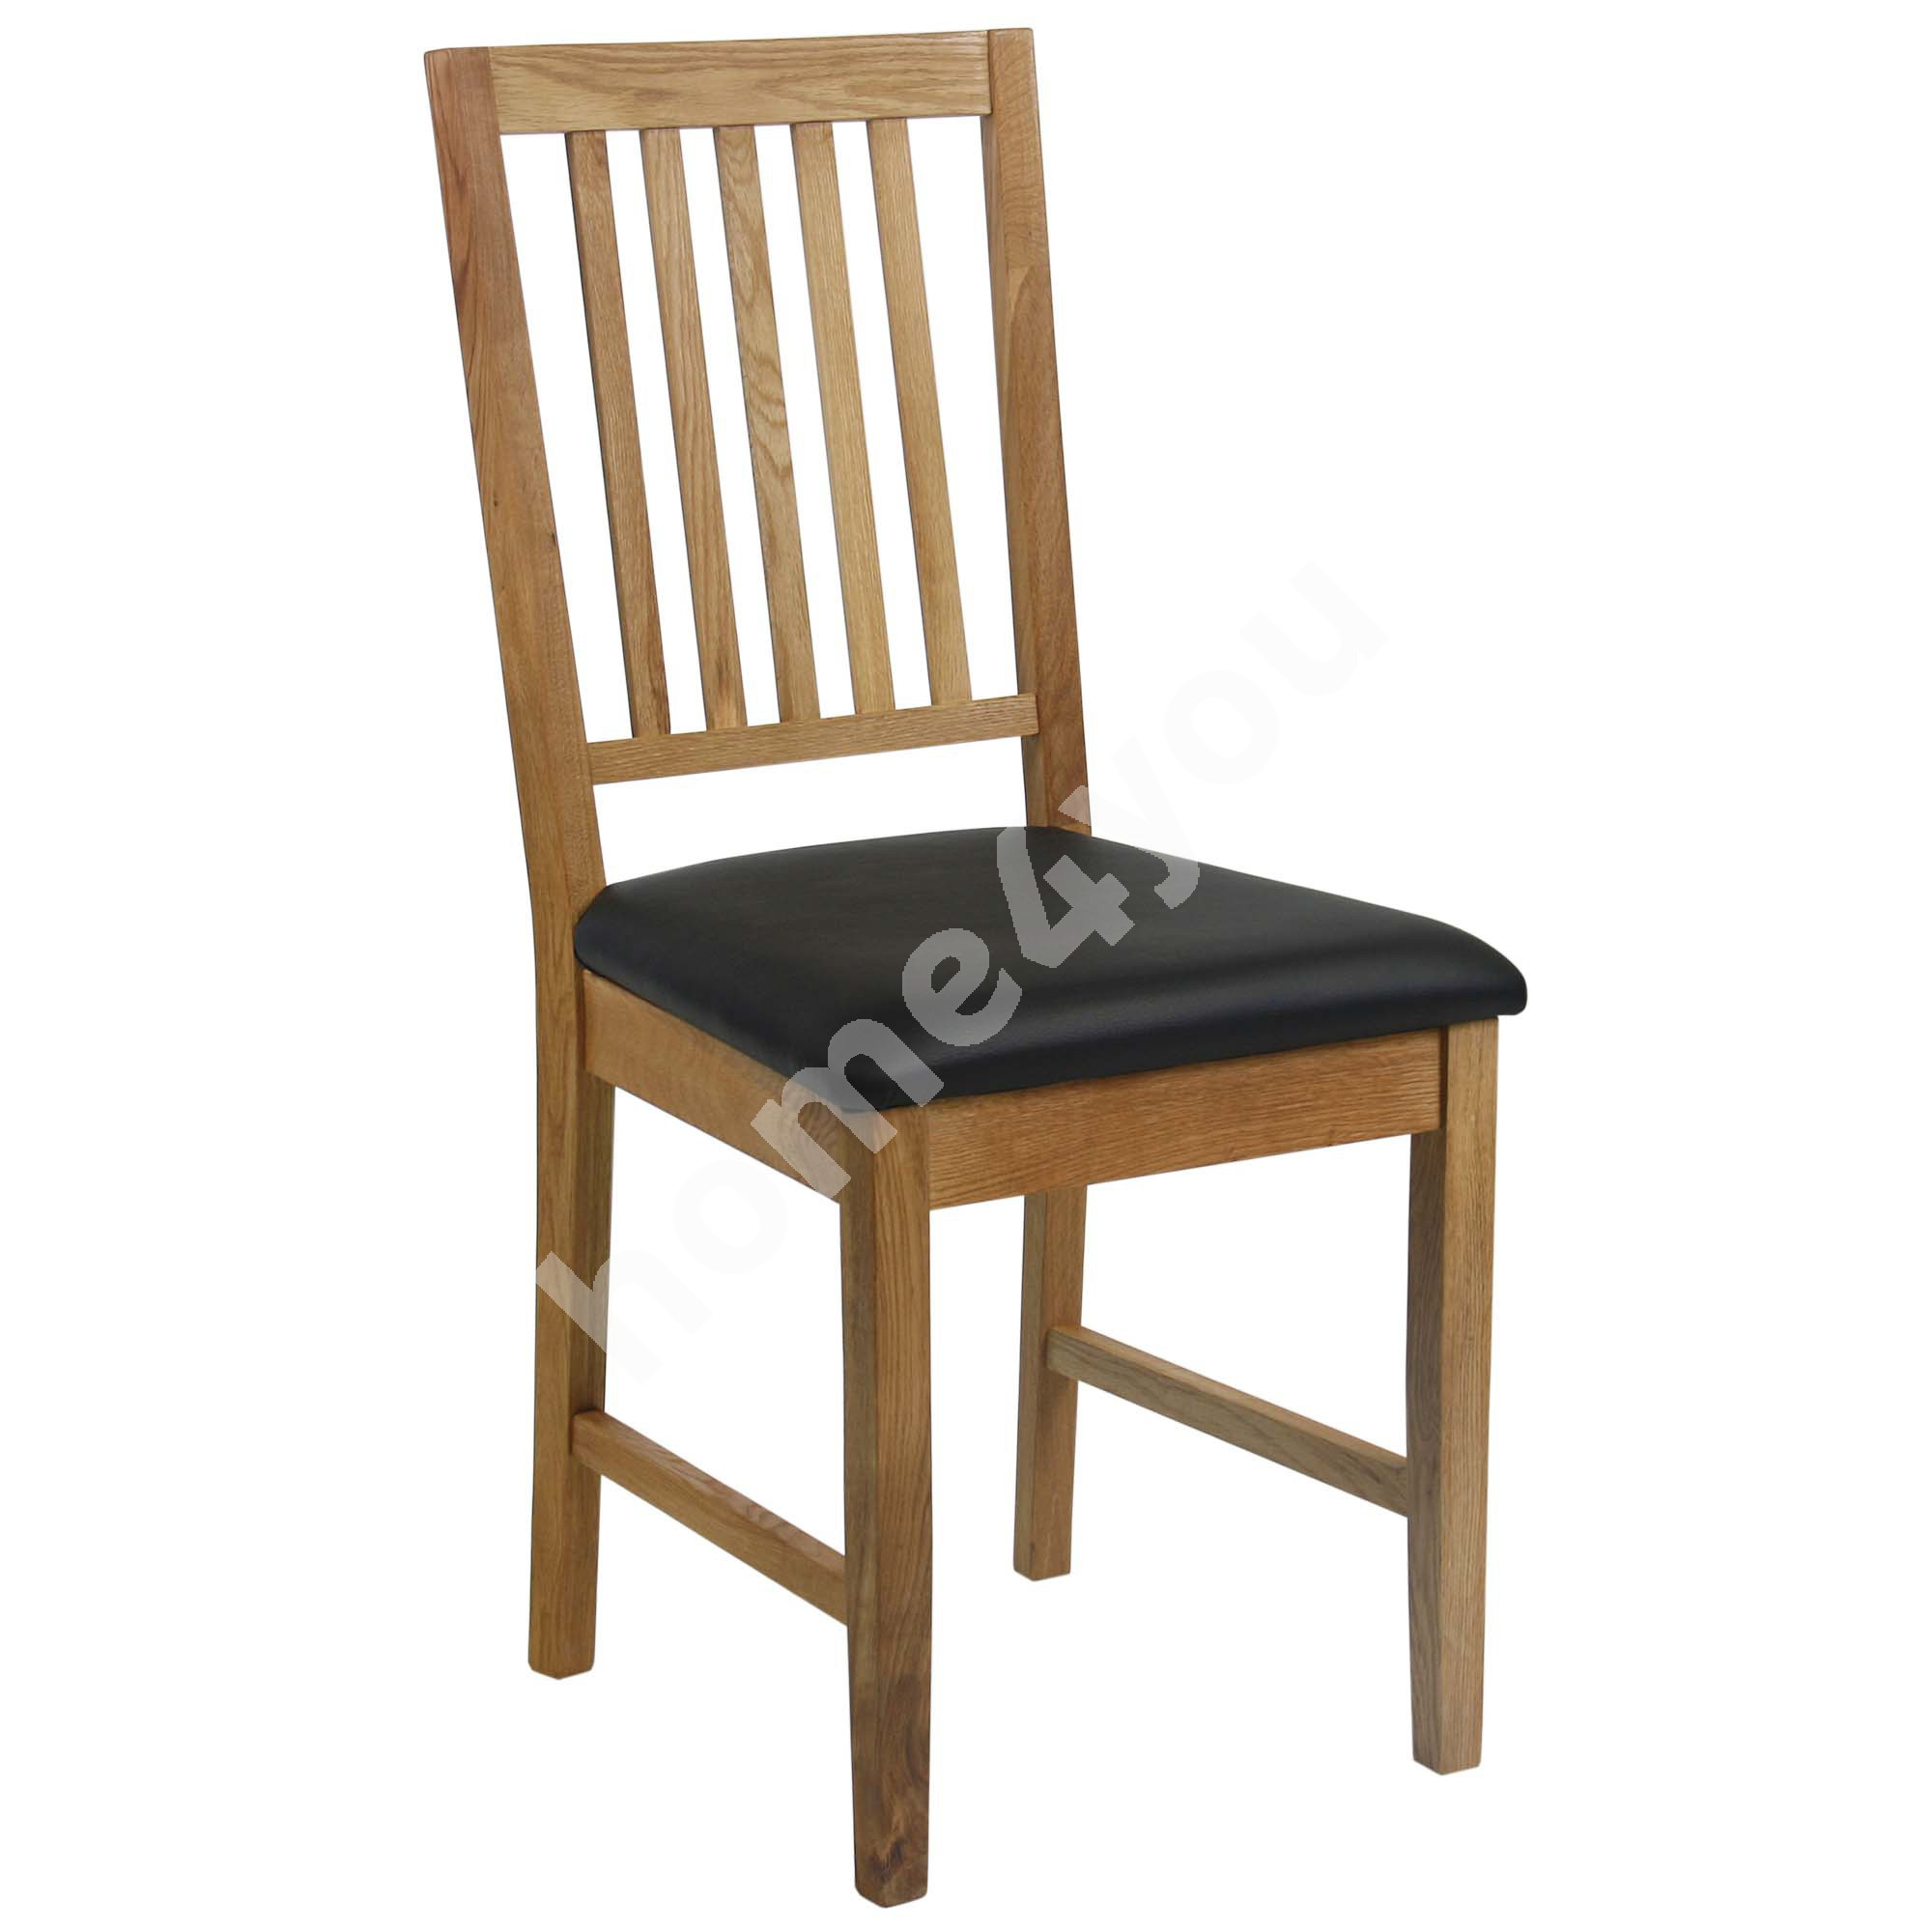 Chair GLOUCESTER 43xD42xH94cm, seat: imitation leather, color: black, wood: oak, finishing: oiled